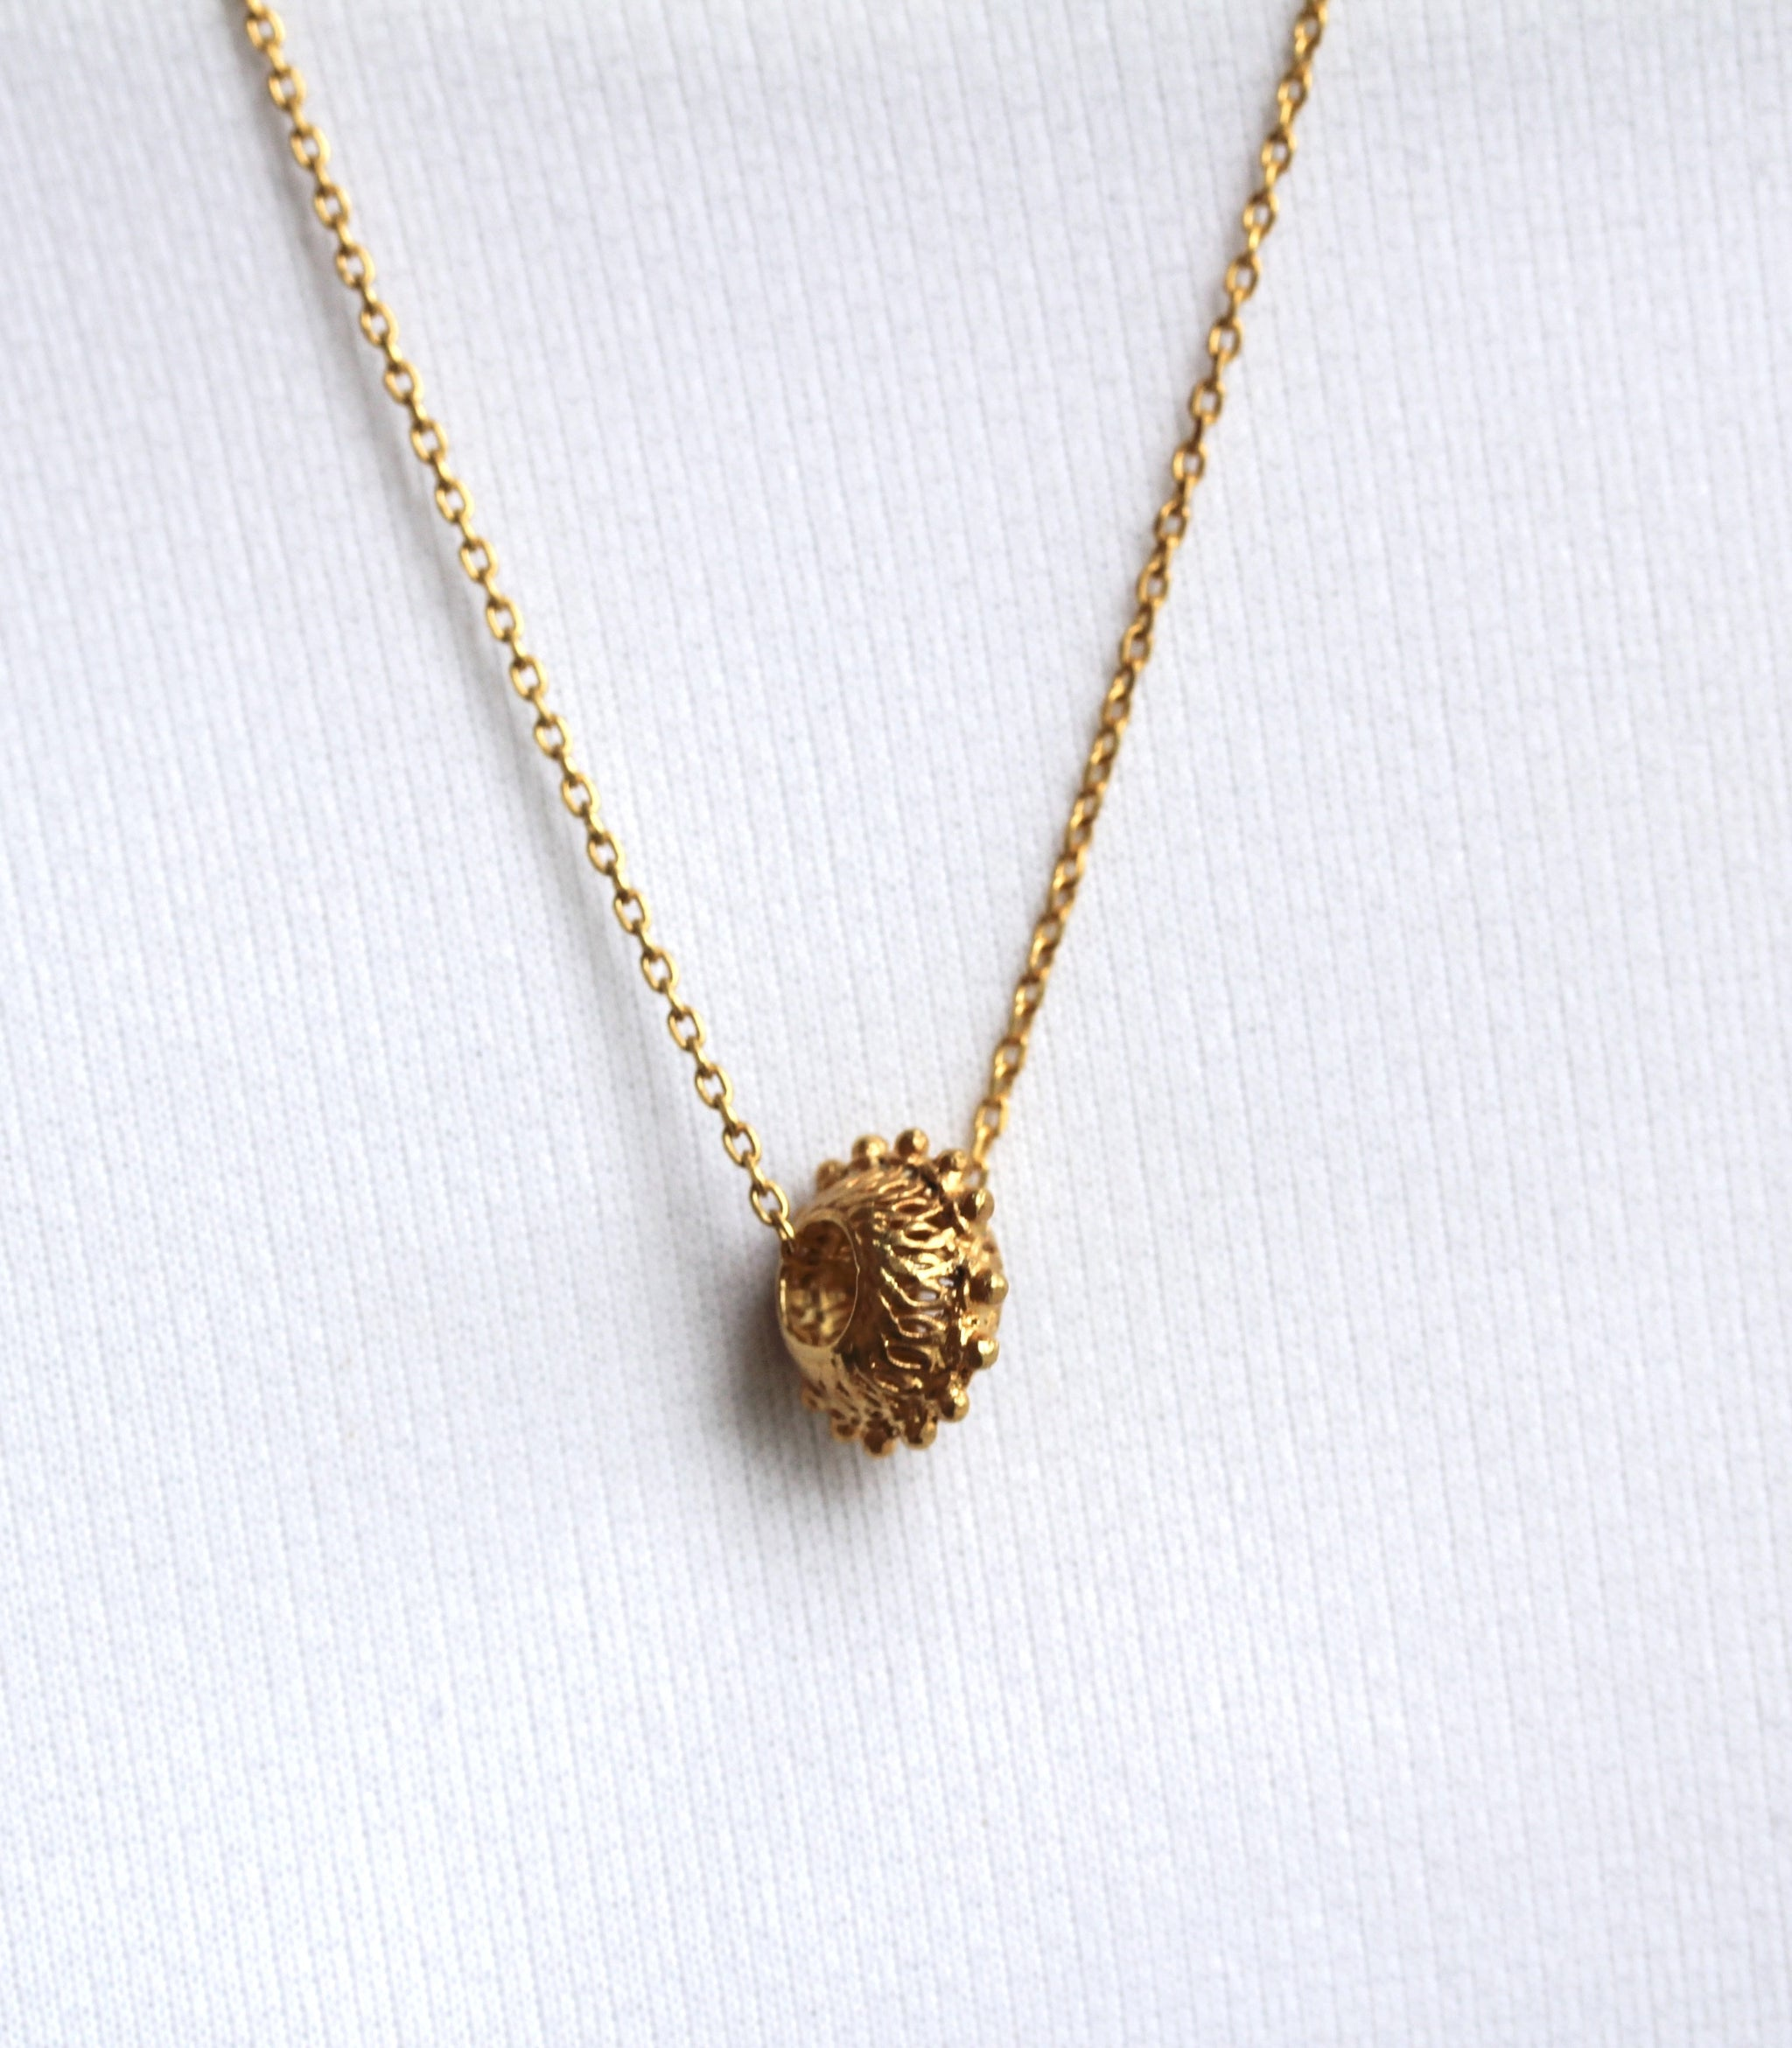 Butete Chain Pendant Necklace - AMAMI